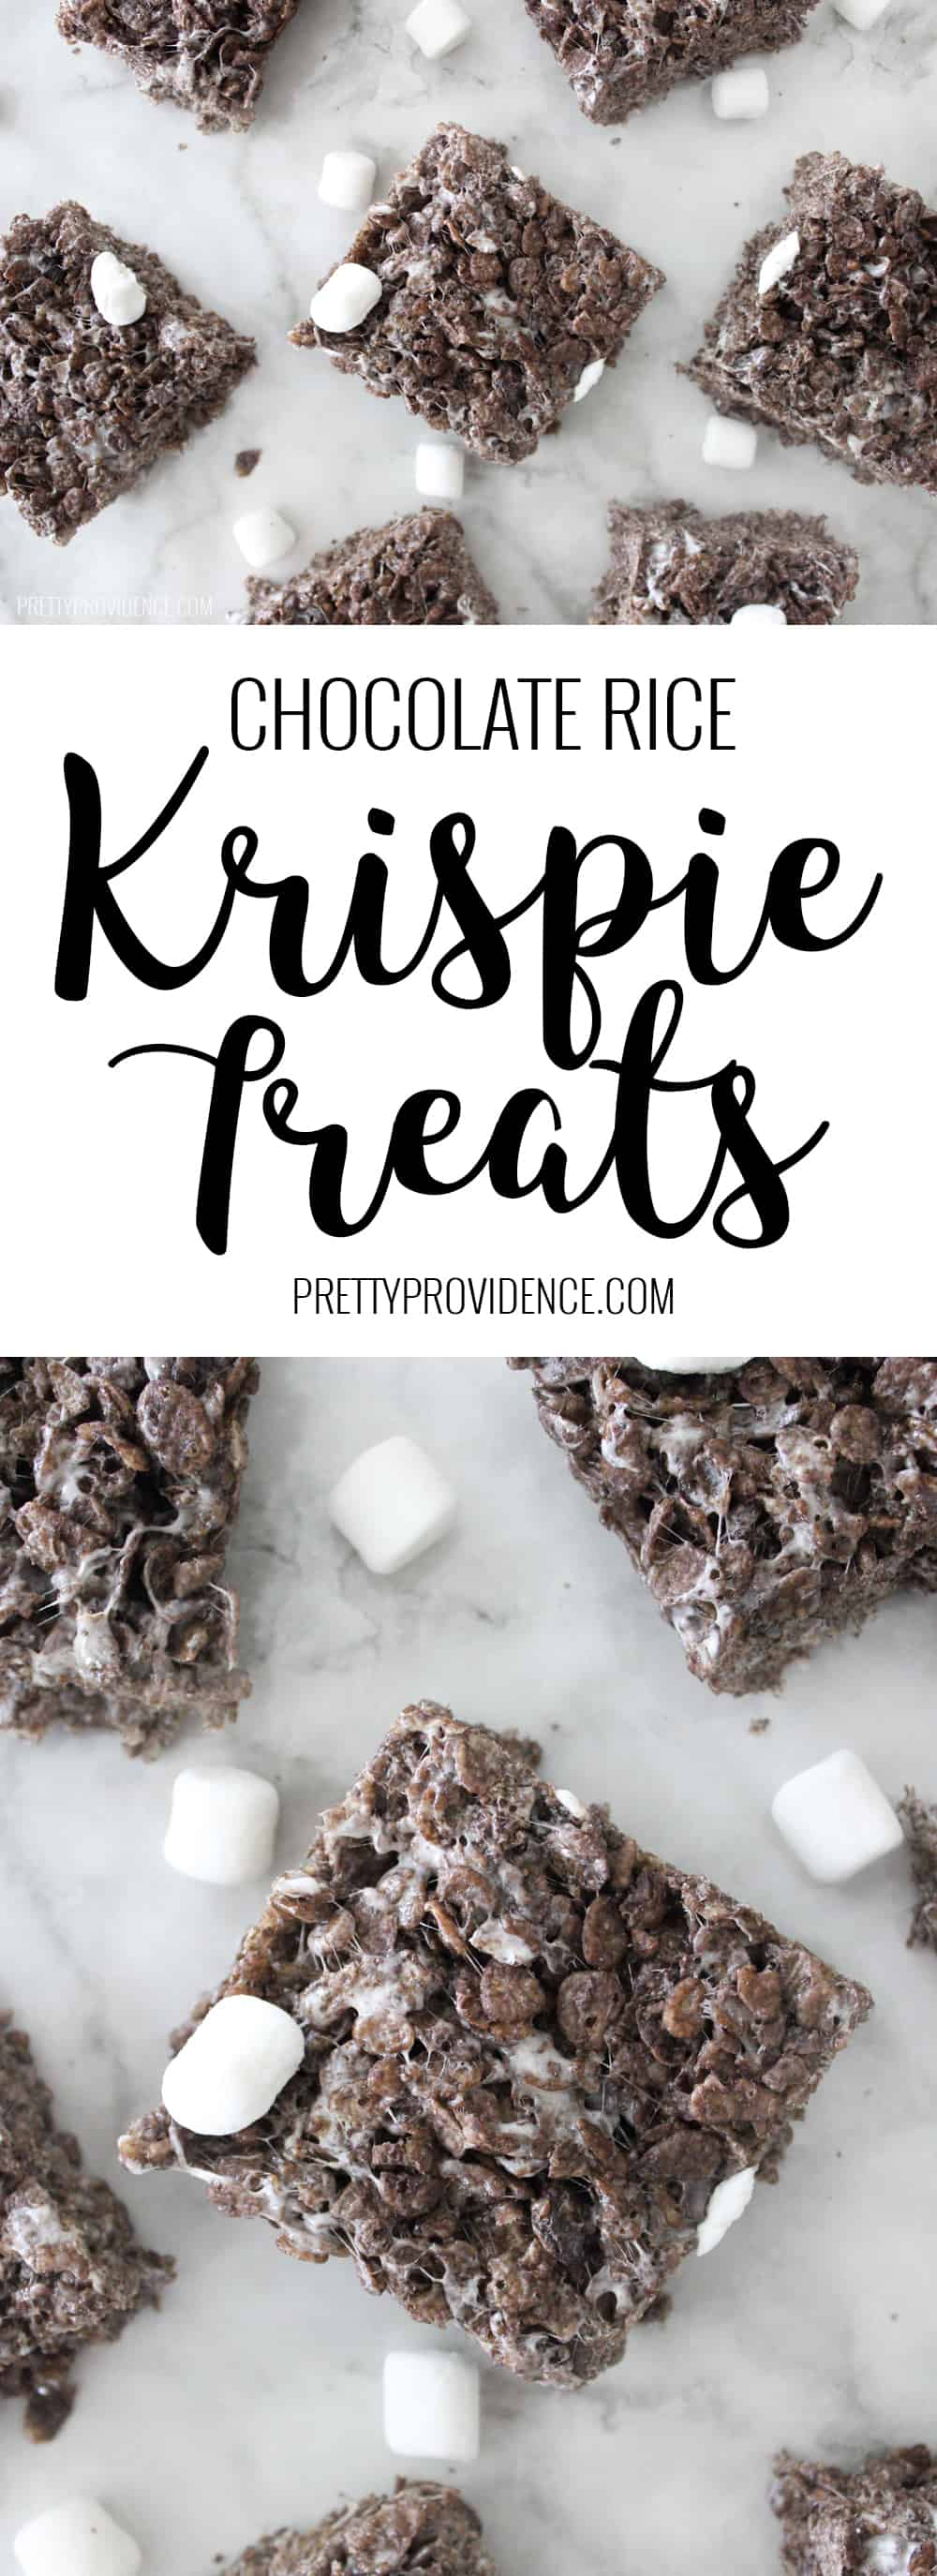 Super easy and delicious chocolate rice krispie treats! Perfect quick treat for when you don't want to turn on those ovens, or you need something delicious for a get together but are short on time! My kids like these better than the originals! #chocolatericekrispies #chocolatericekrispietreats #chocolatericekrispieballs #ricekrispierecipe #ricekrispies #nobake #nobaketreats